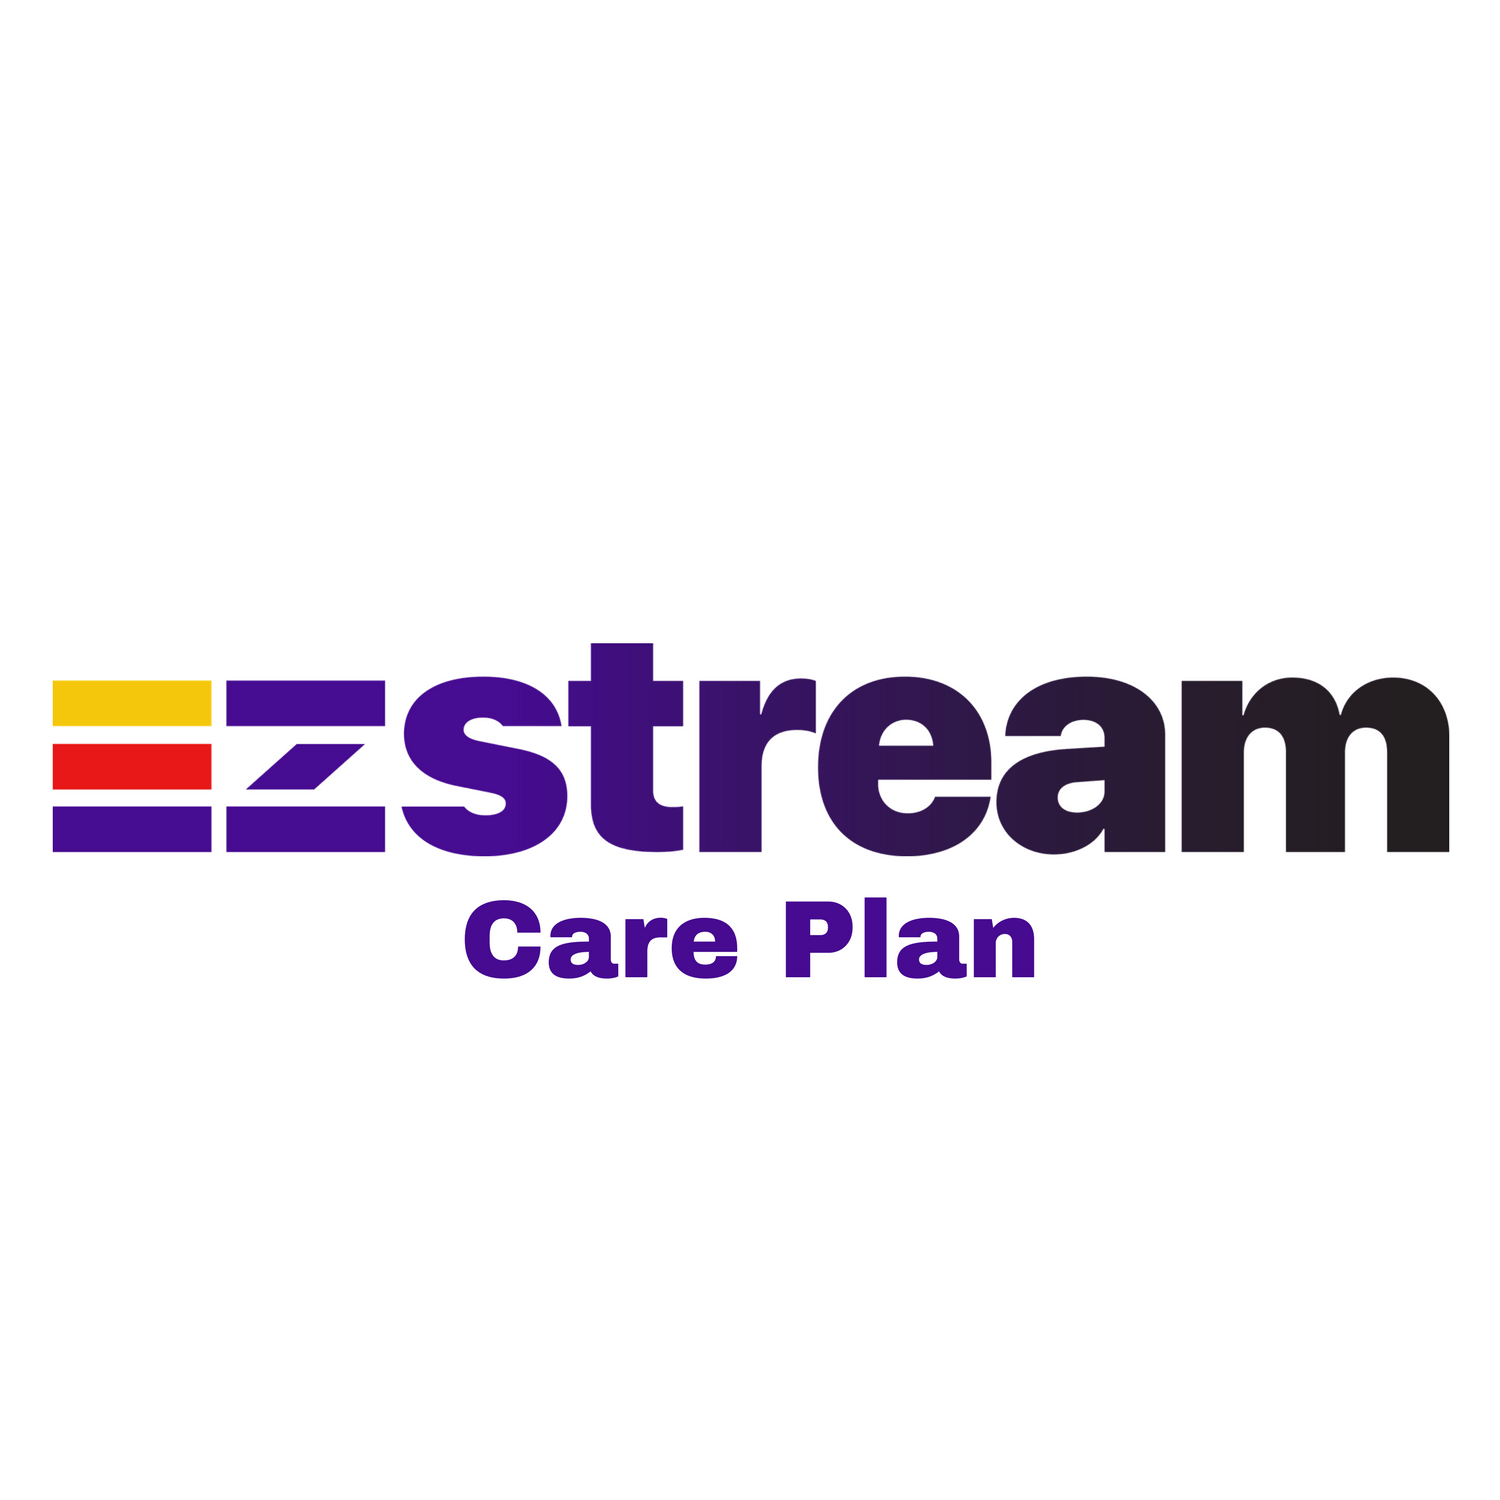 EZ Stream Care Plan